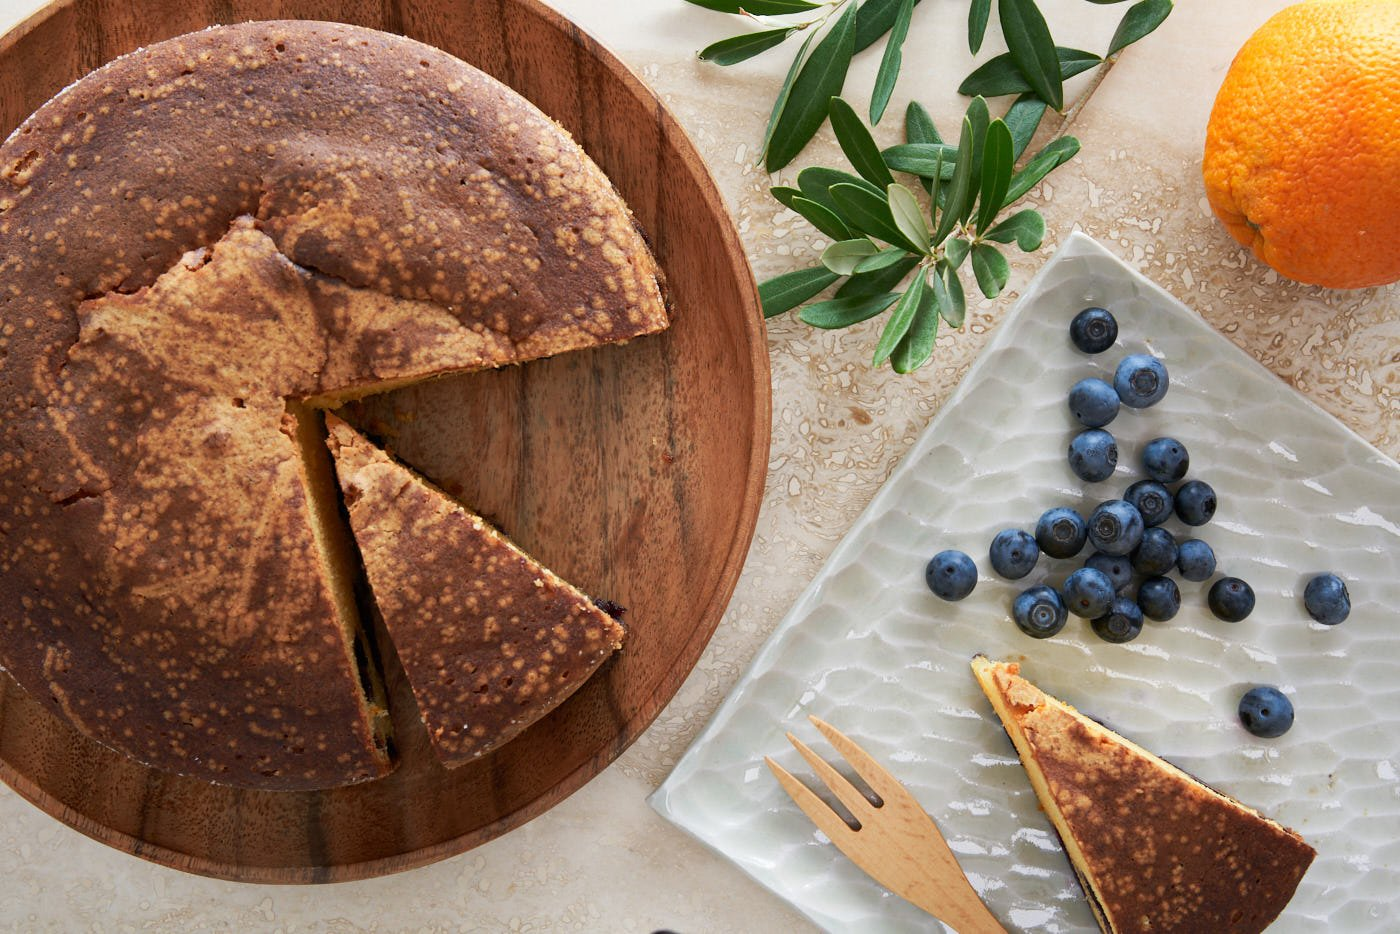 With just a handful of ingredients, this delectable blueberry olive oil cake is tender and moist on the inside with a crisp sugar crust on the outside.